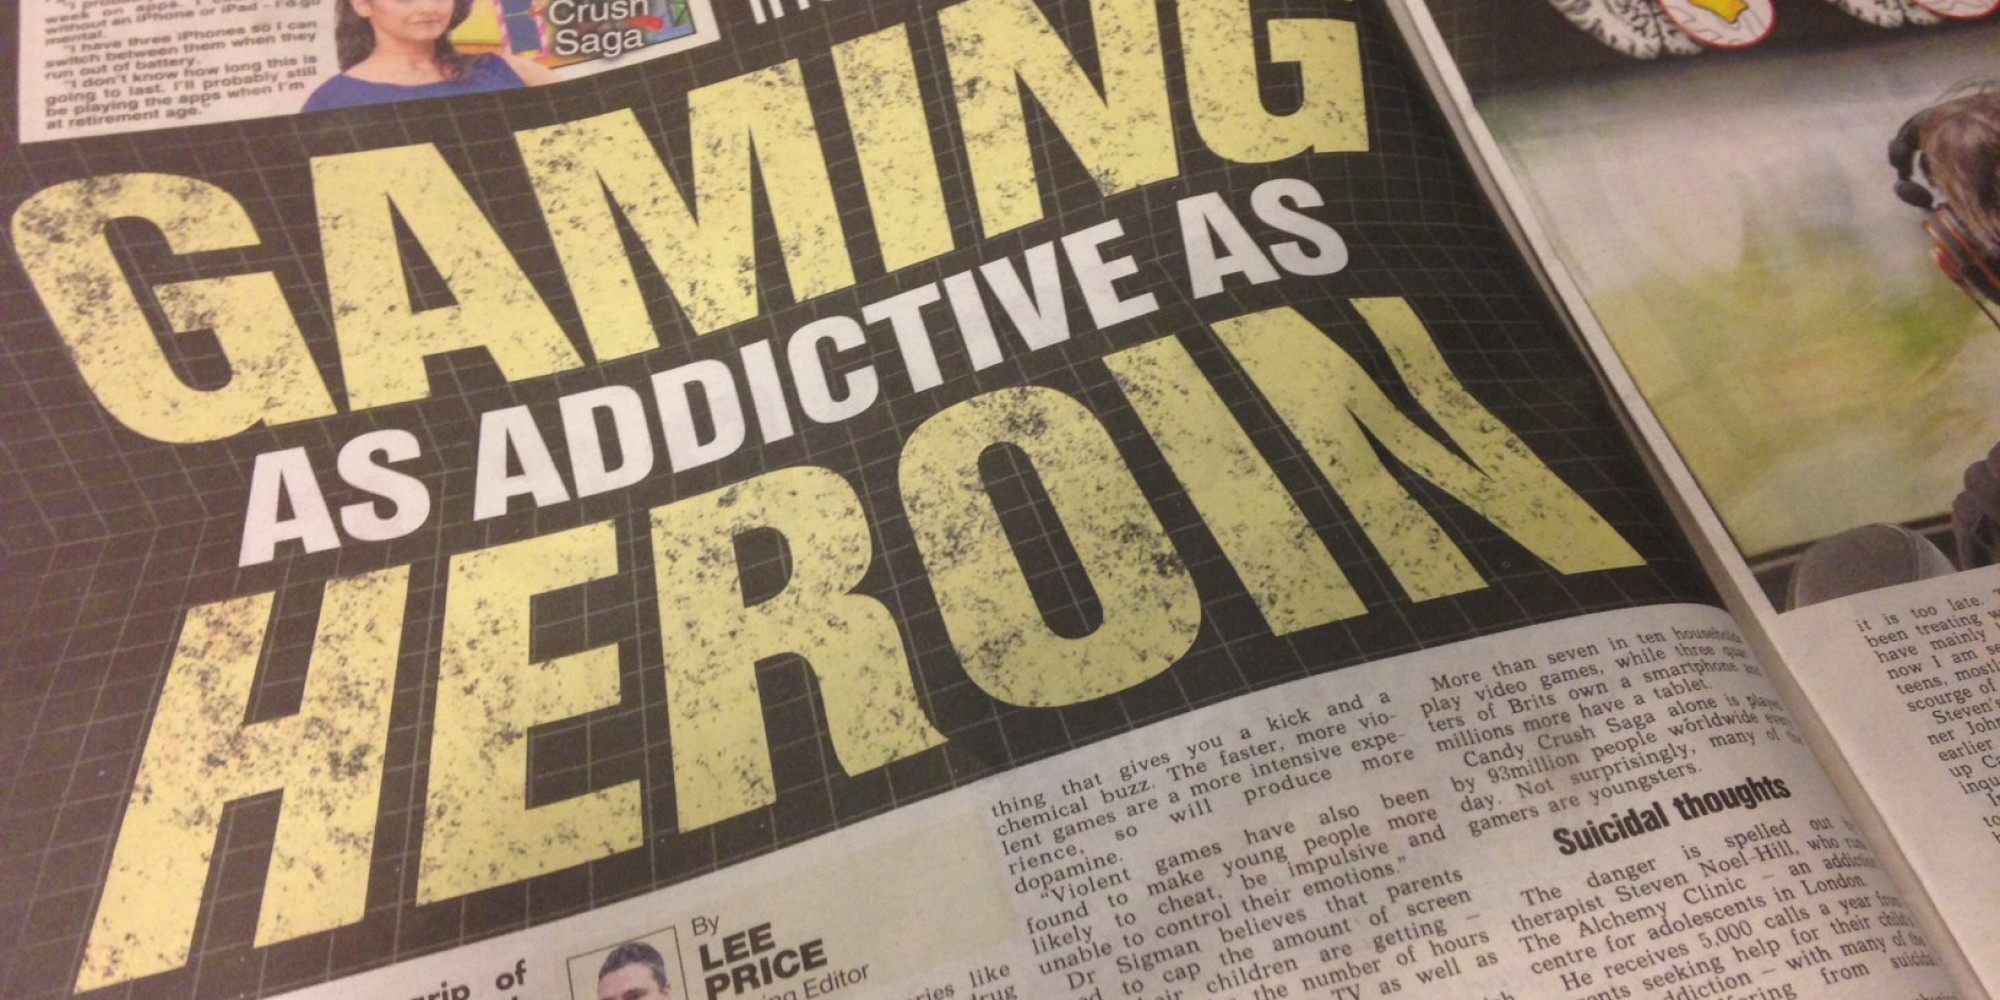 """being a technology addictive do you You can be a social media star and not be addicted to digital devices:  that  people can be addicted to technology the same way they are addicted to online  porn and video games  being consistent with consequences""""."""